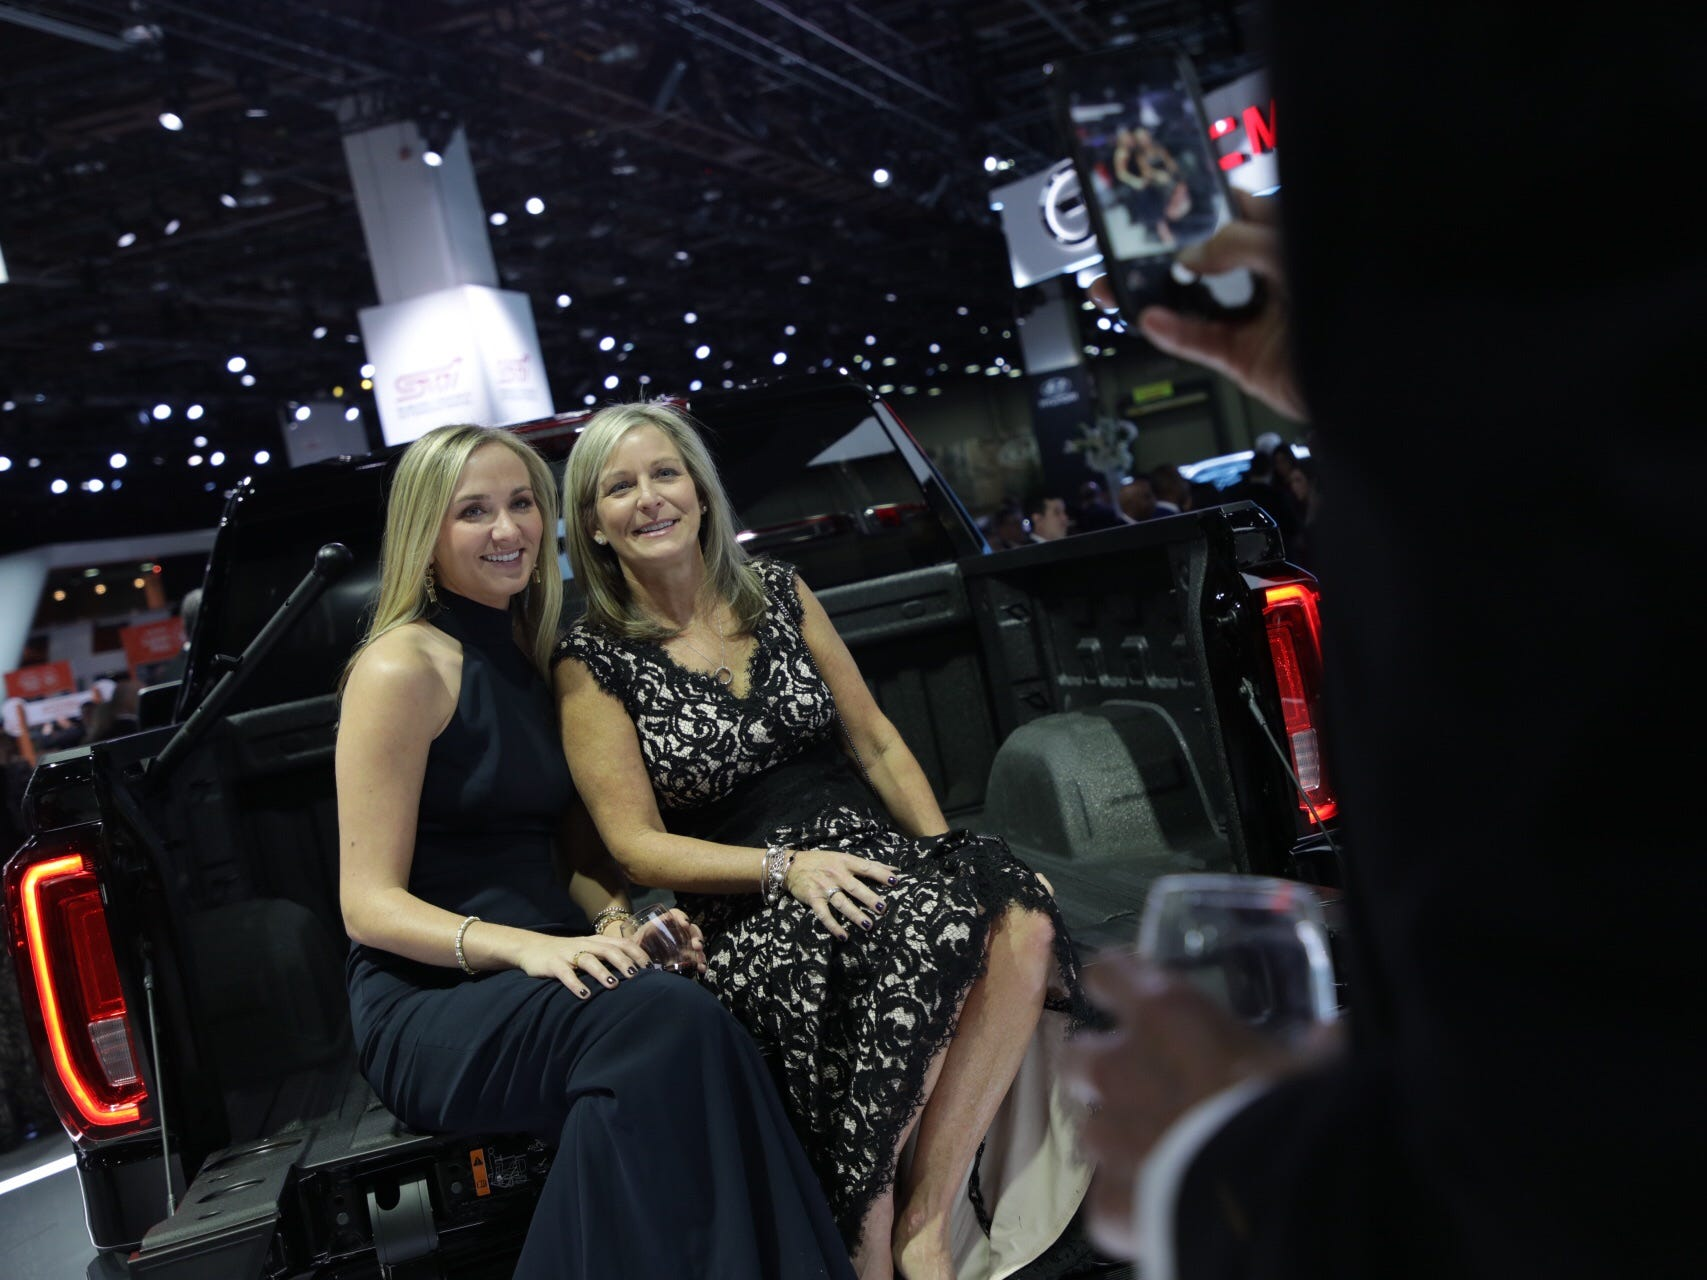 Sheri Walworth, right and her daughter Lindsey Walworth pose for a photograph in the back of a GMC Denali Sierra truck during the 2019 North American International Auto Show Charity Preview at Cobo Center in Detroit on Friday, January 18, 2019.